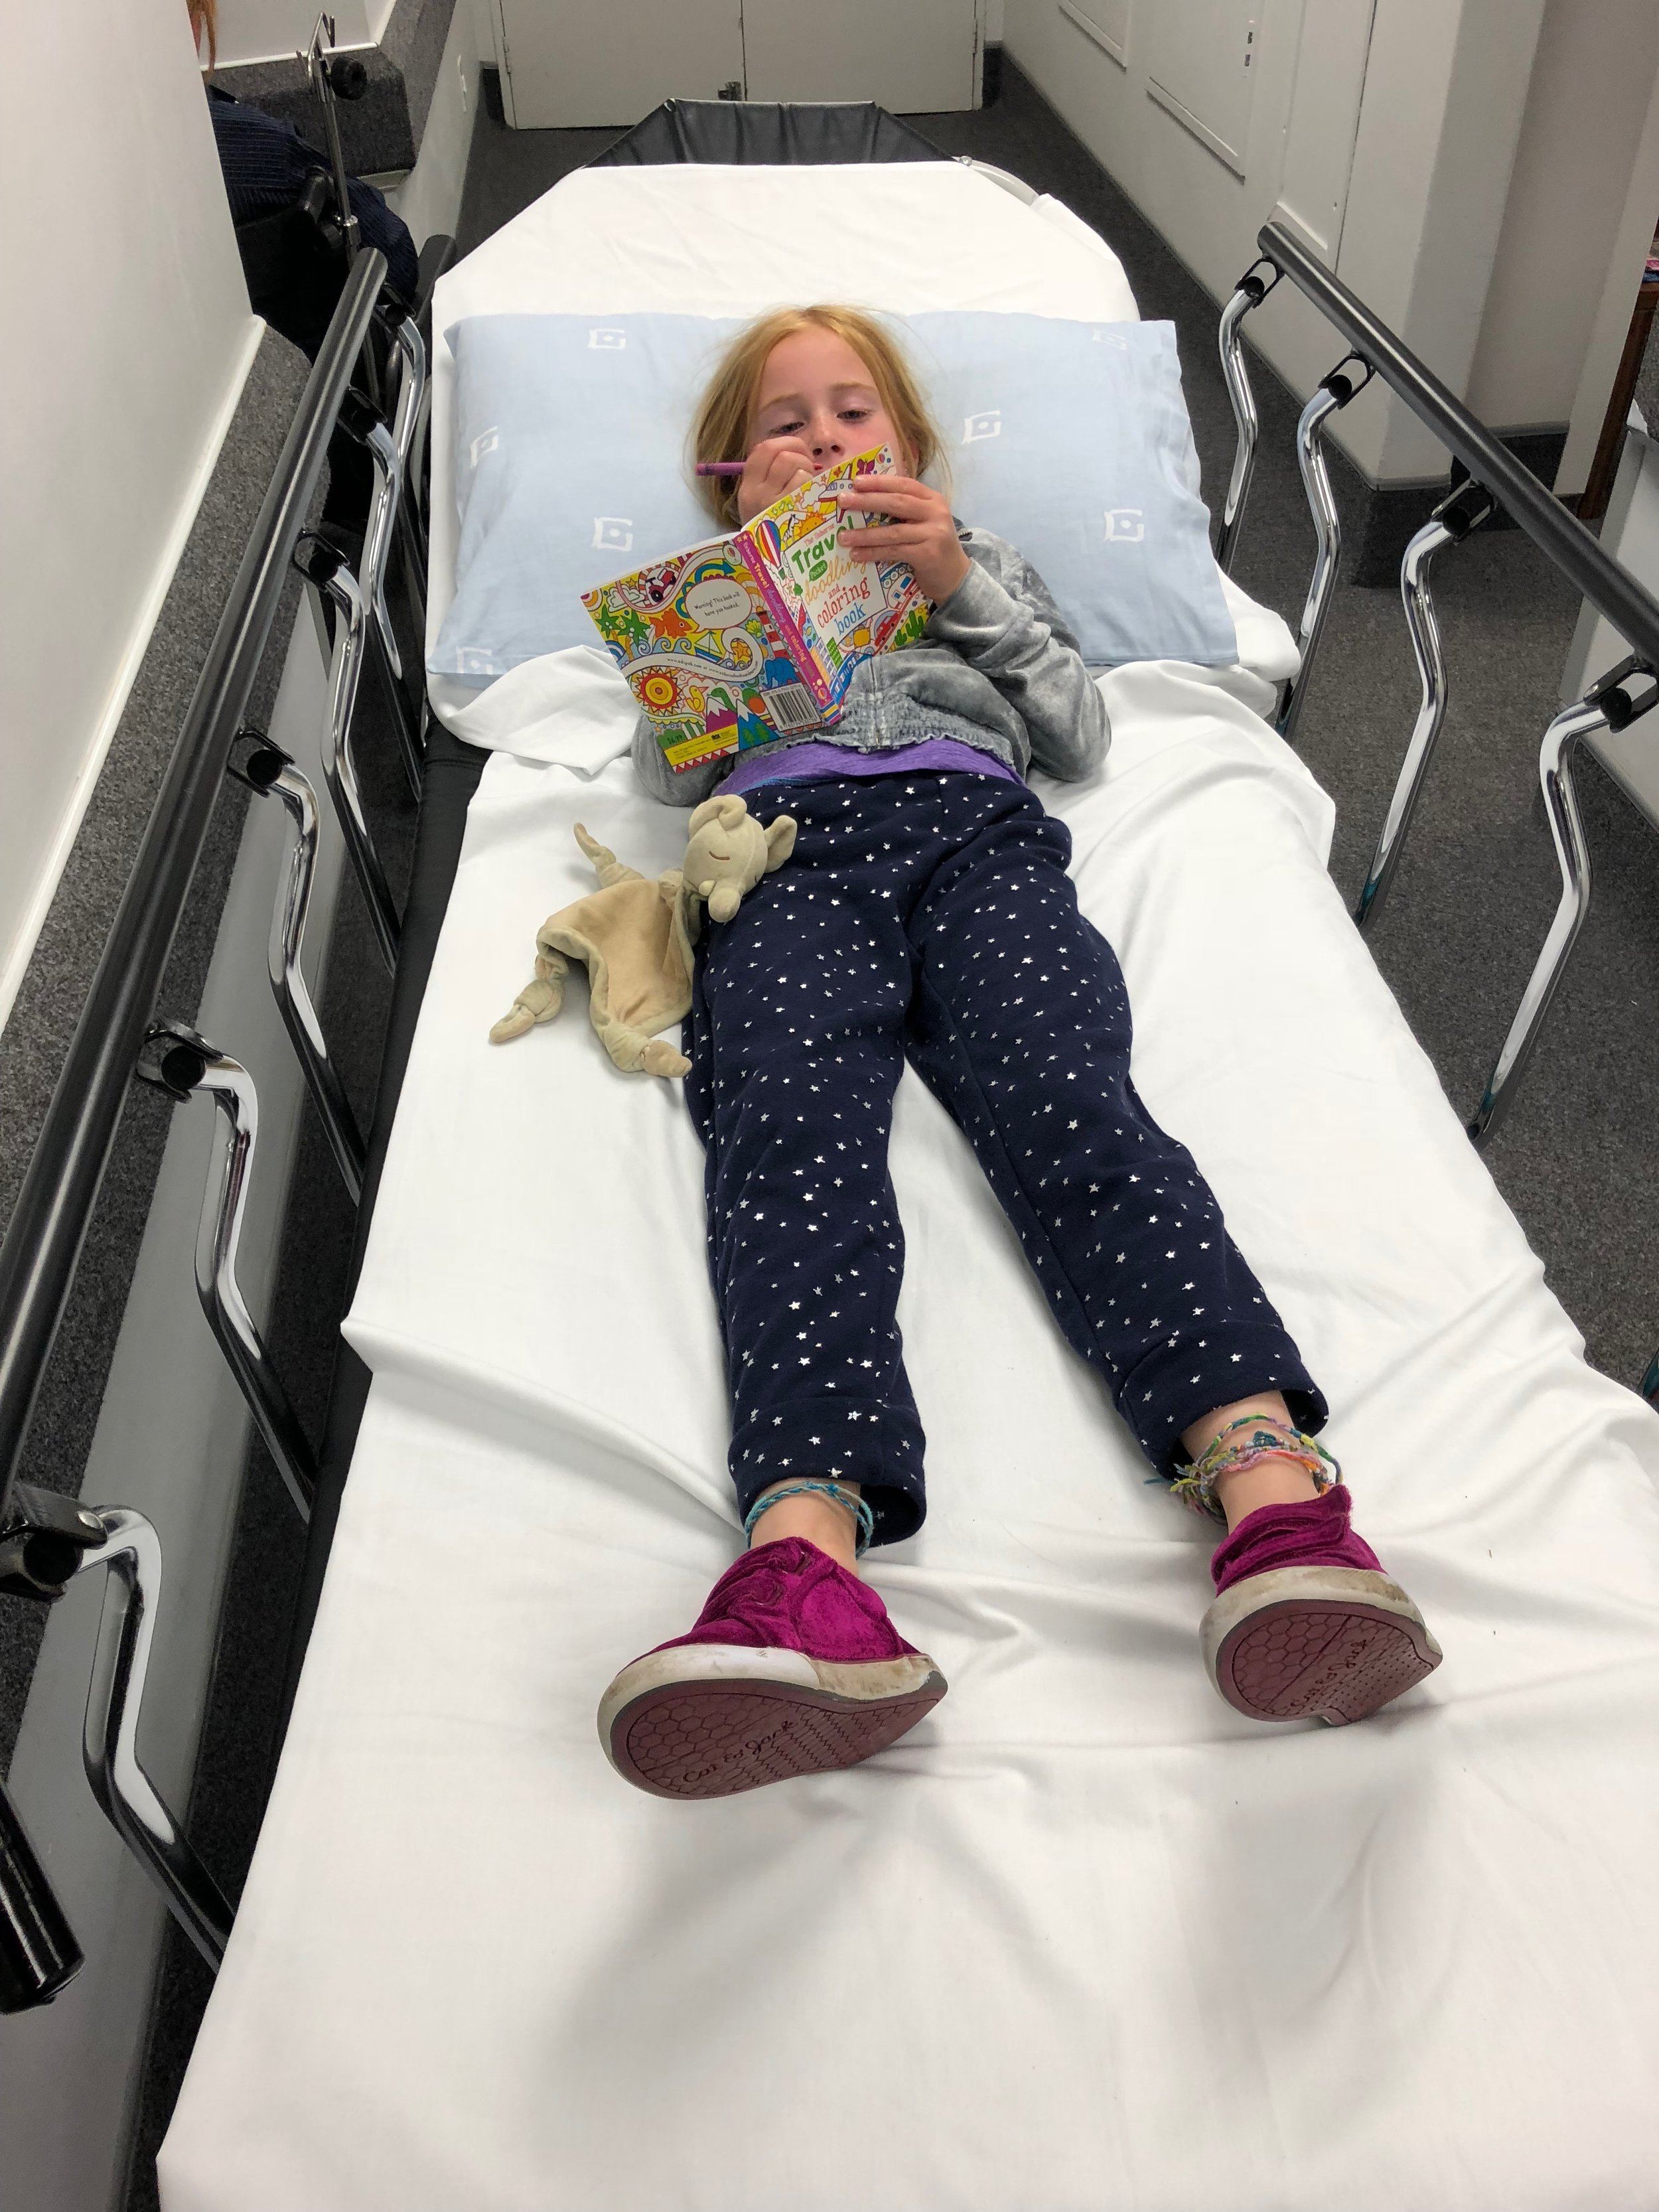 A quick trip to urgent care in Cape Town